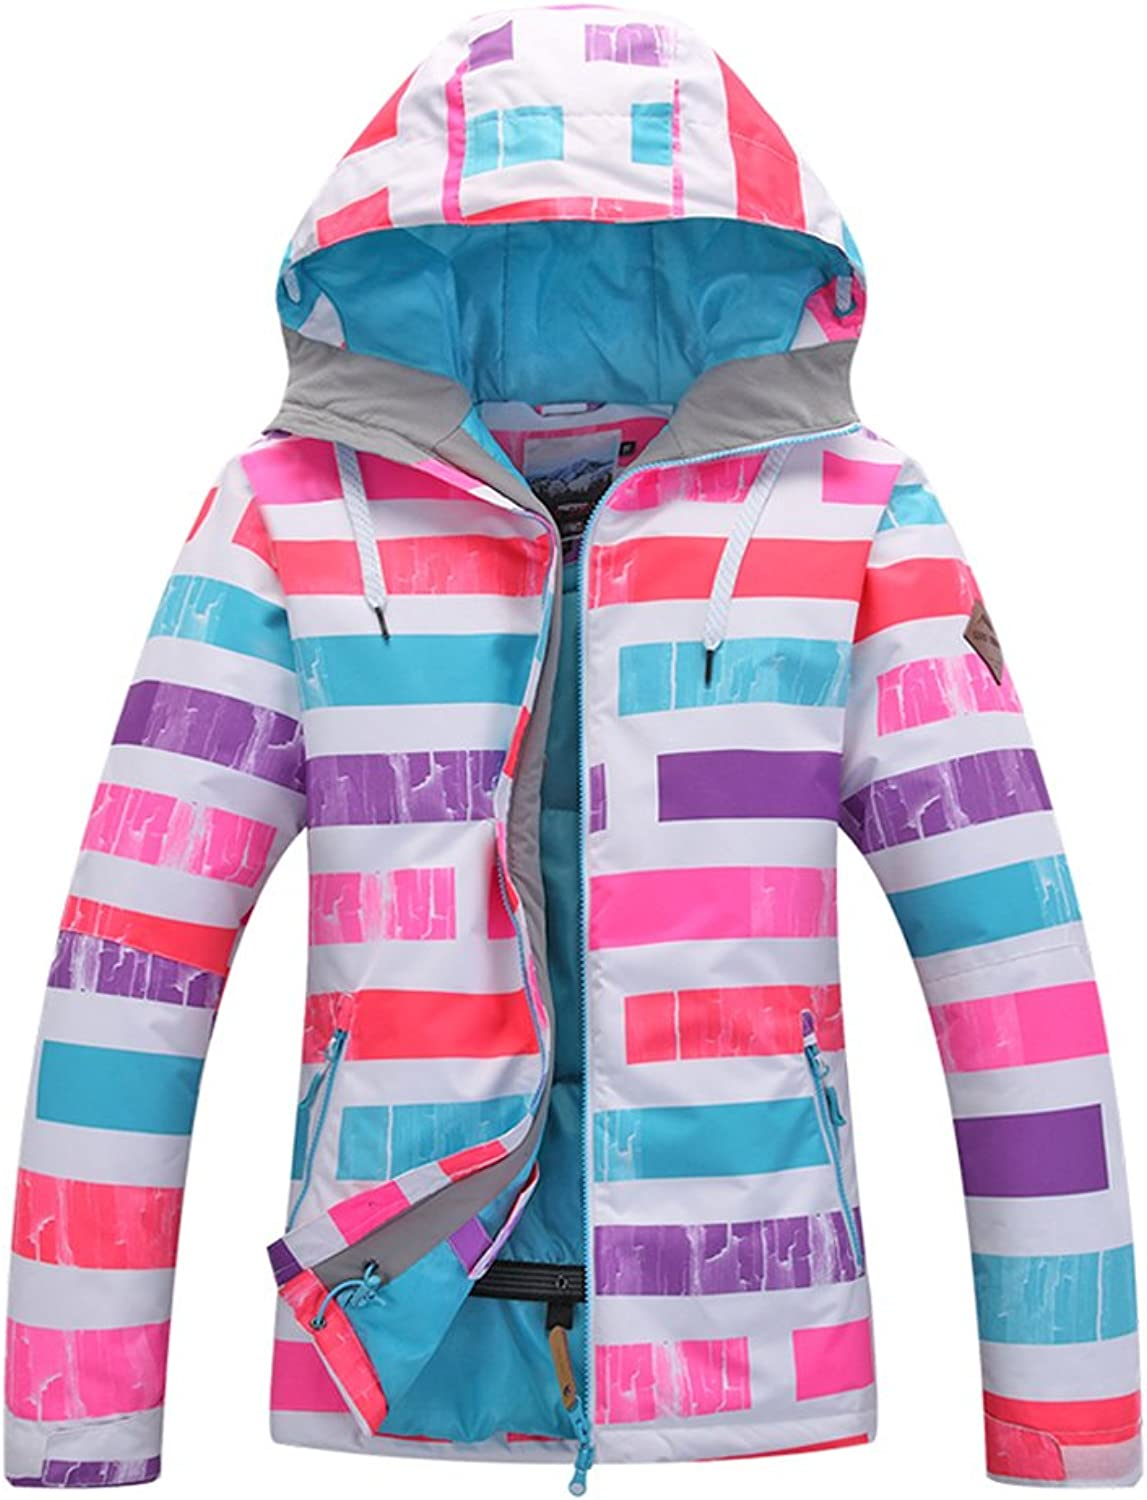 HOTIAN Women's Waterproof Snowboard Ski Jacket Windproof Snow Jacket Below Zero Coat